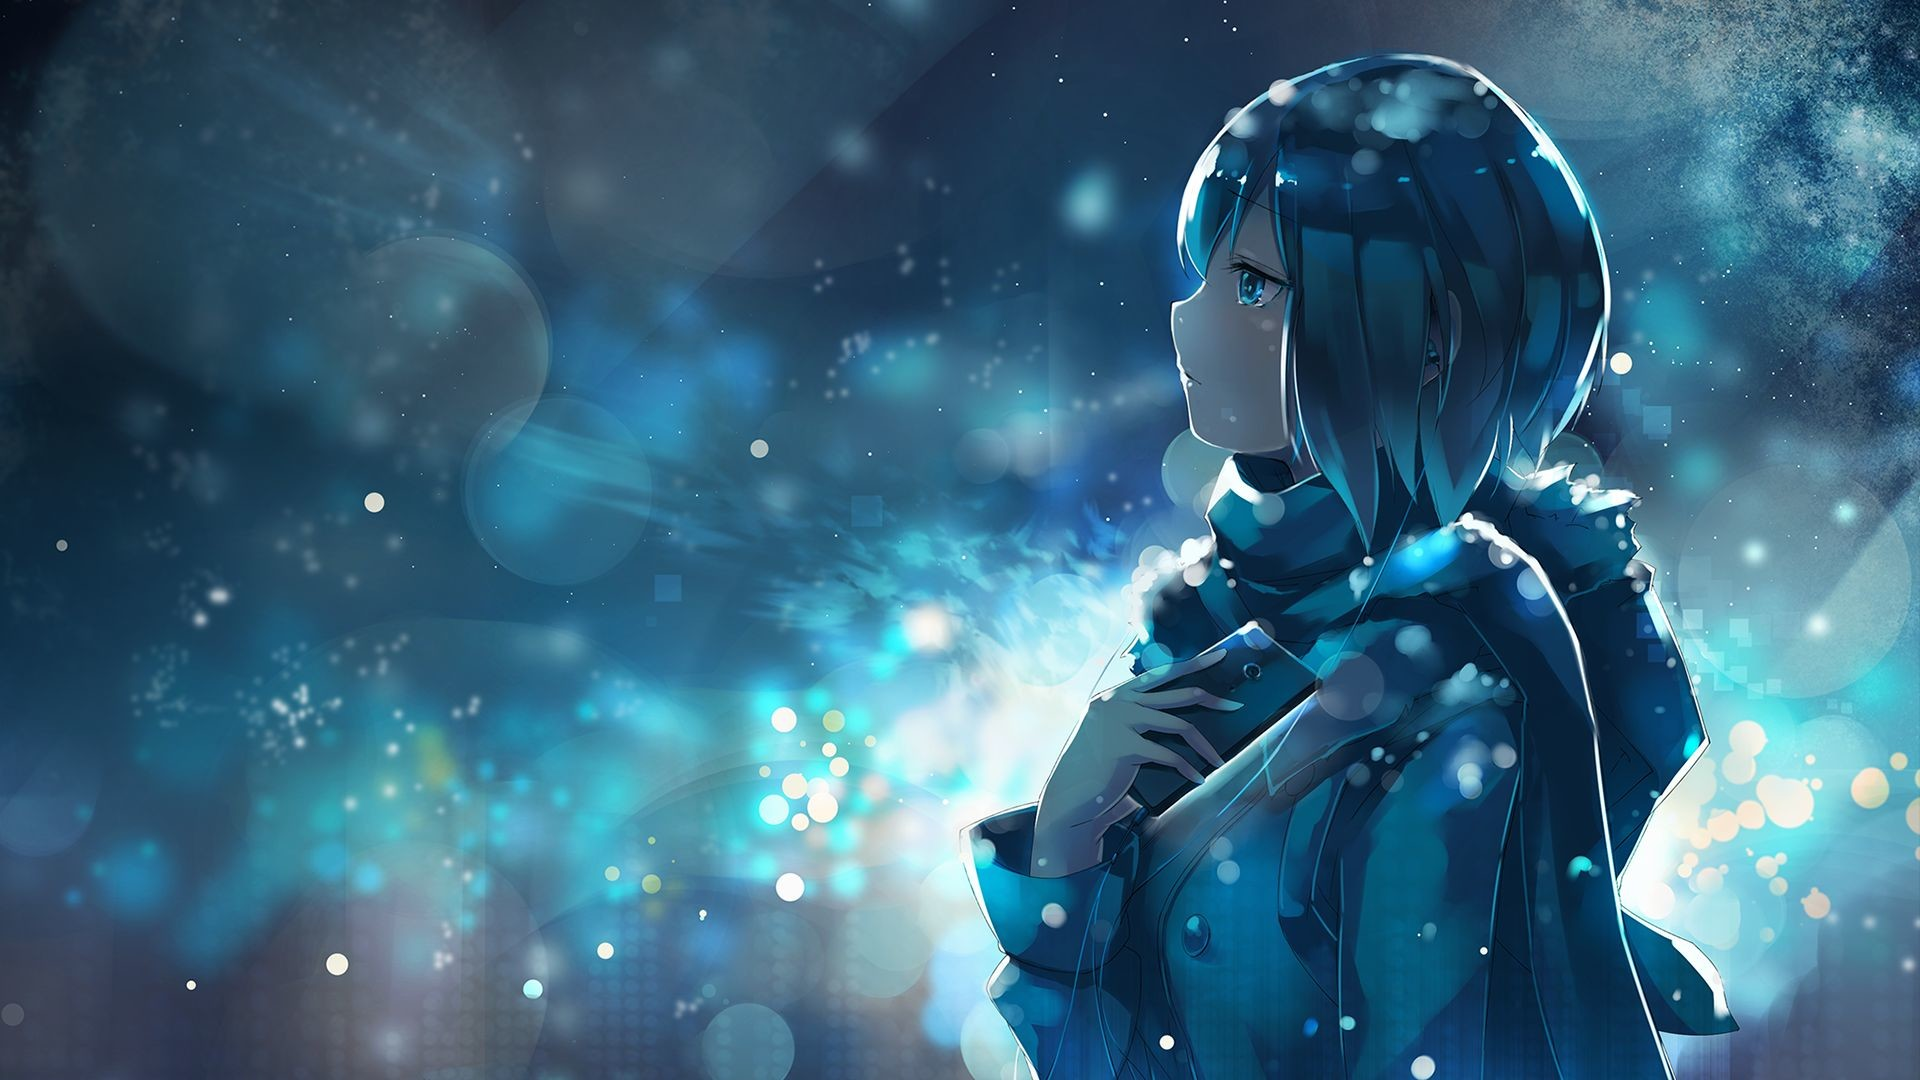 1920x1080 Epic Anime Wallpapers HD